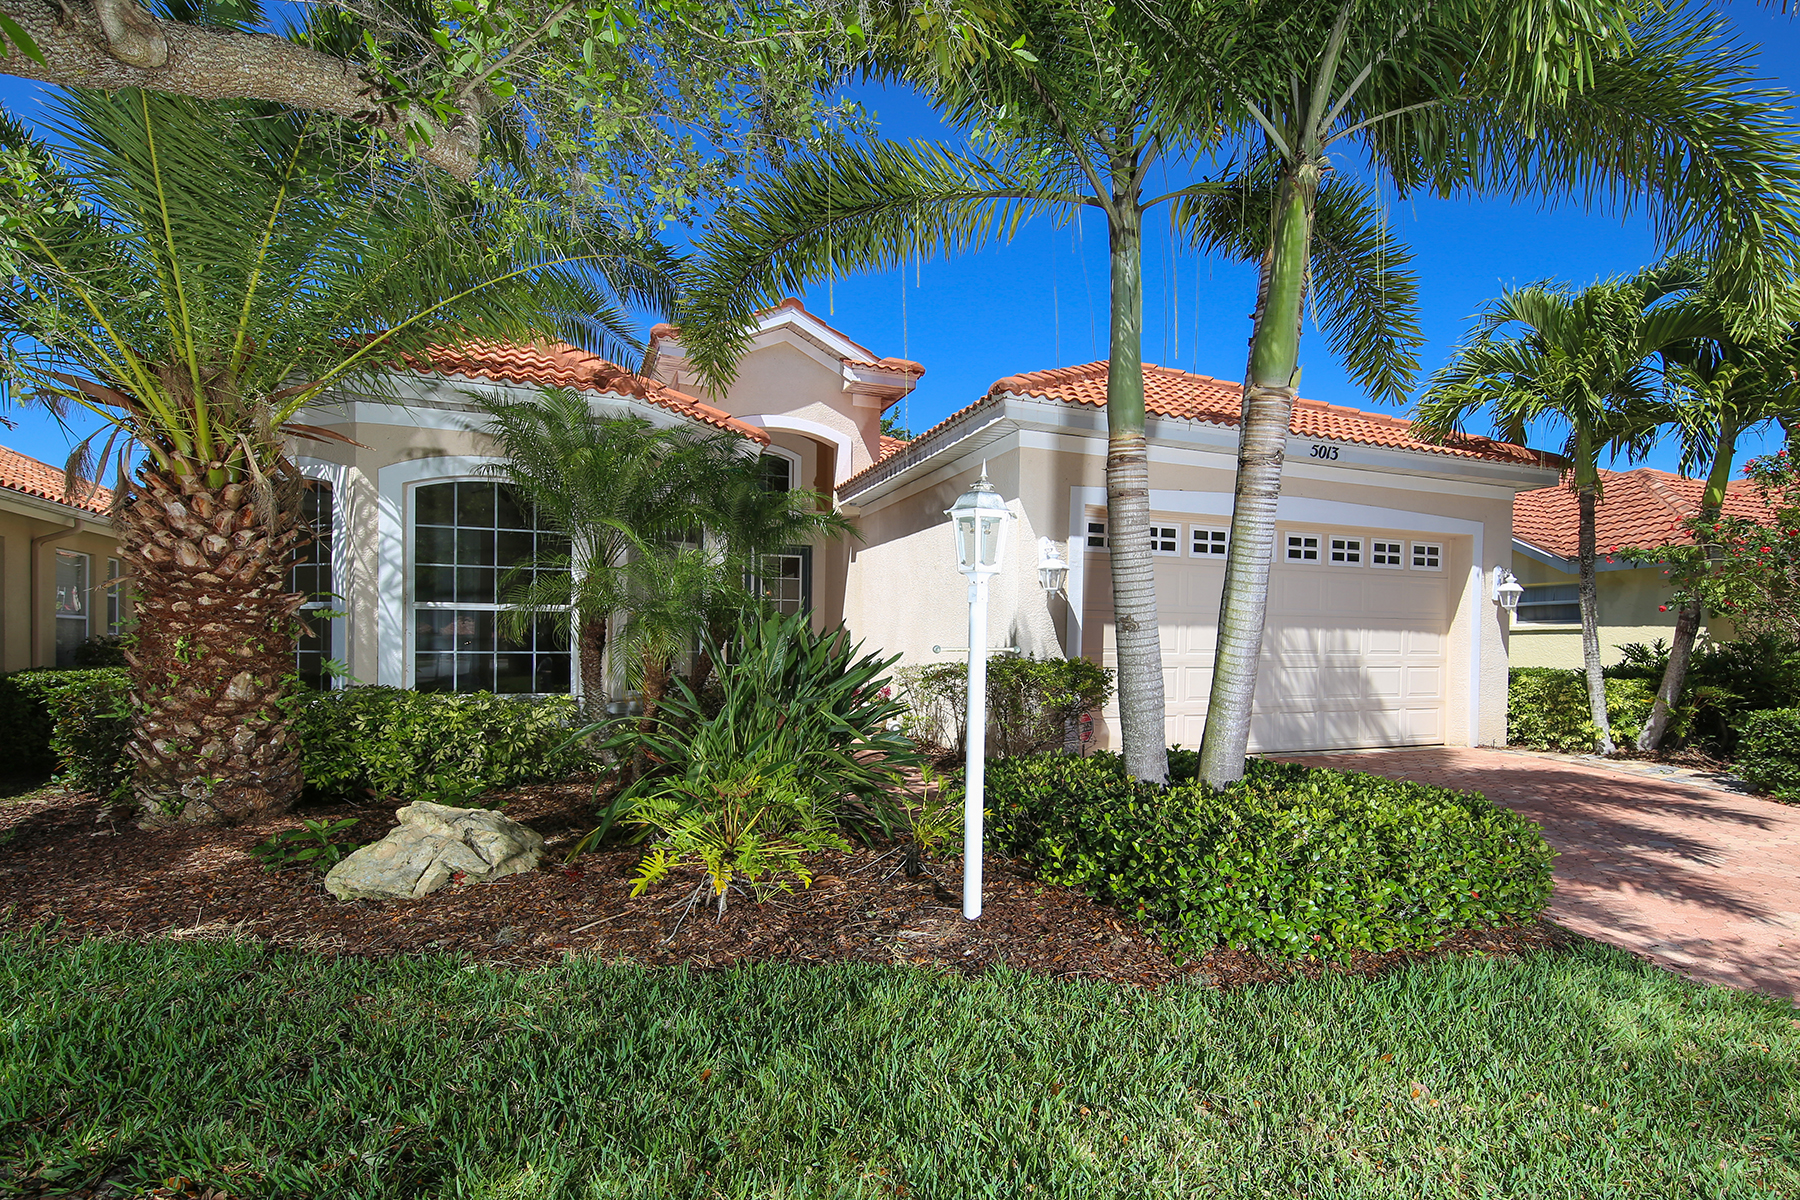 Single Family Home for Sale at TURTLE ROCK 5013 Hanging Moss Ln Sarasota, Florida, 34238 United States